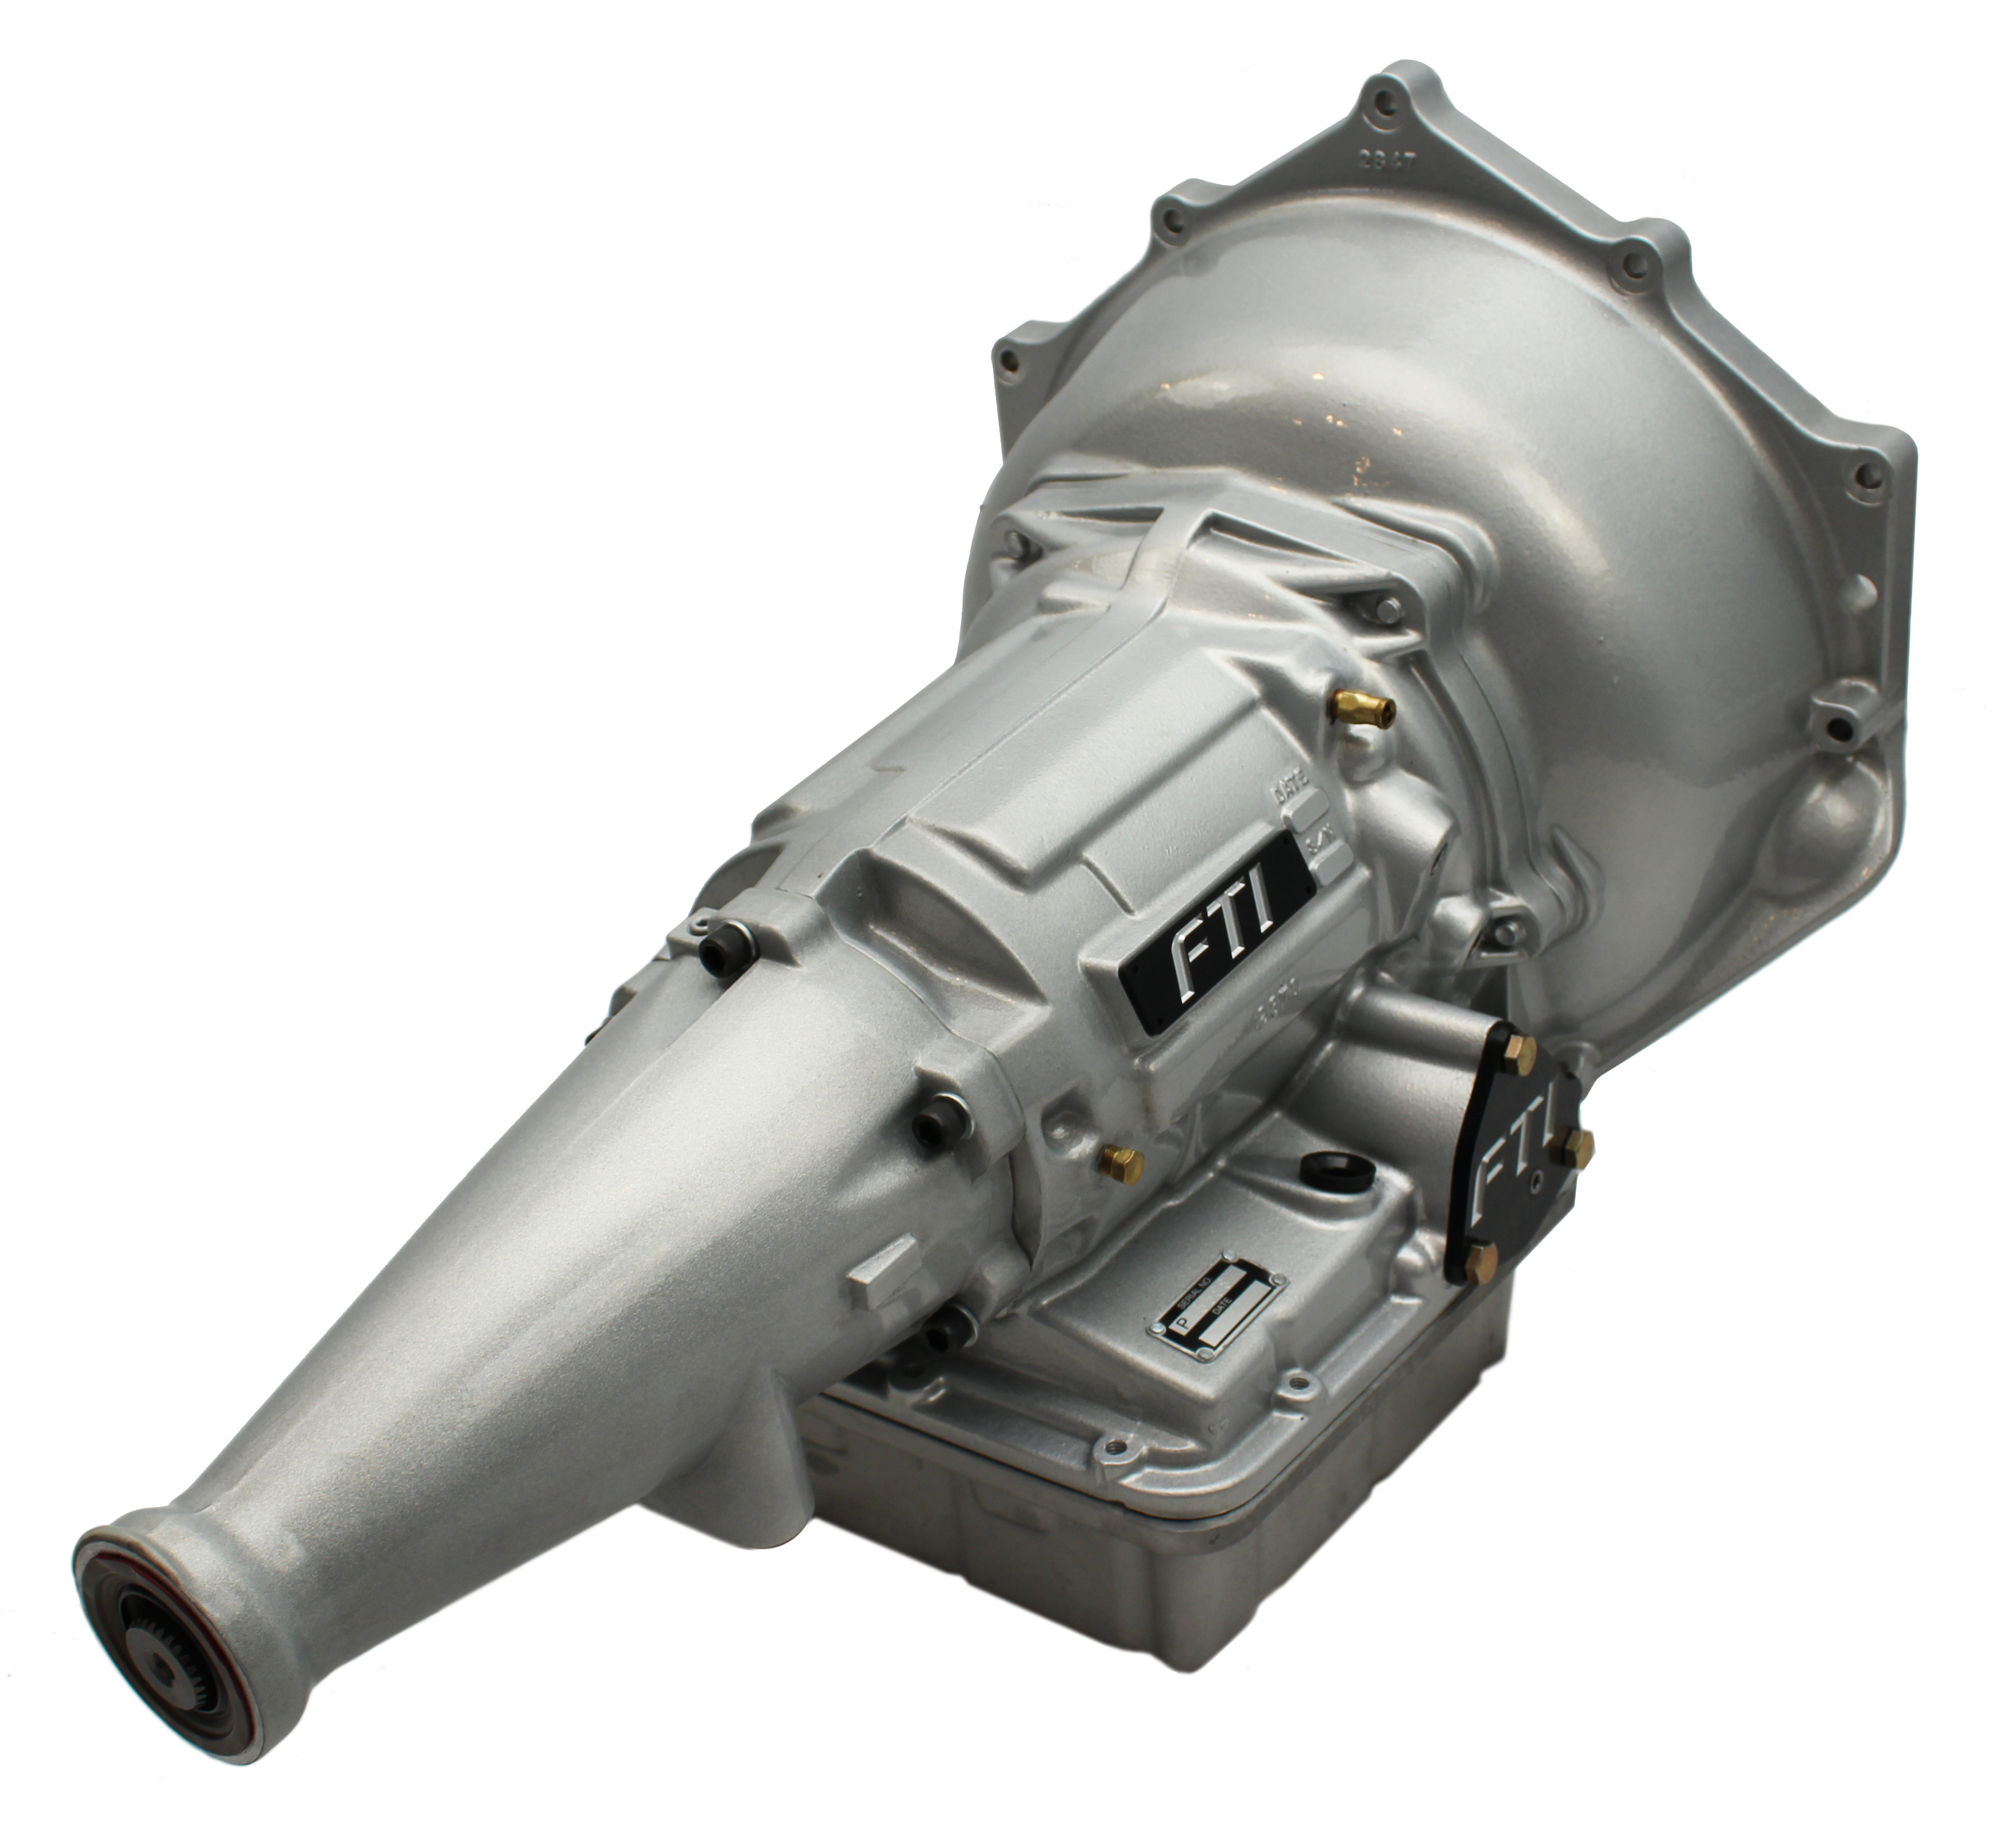 Check 'Em Out: FTI Performance Has Your Automatic Transmission Needs Handled From Mild To Pro Modified!